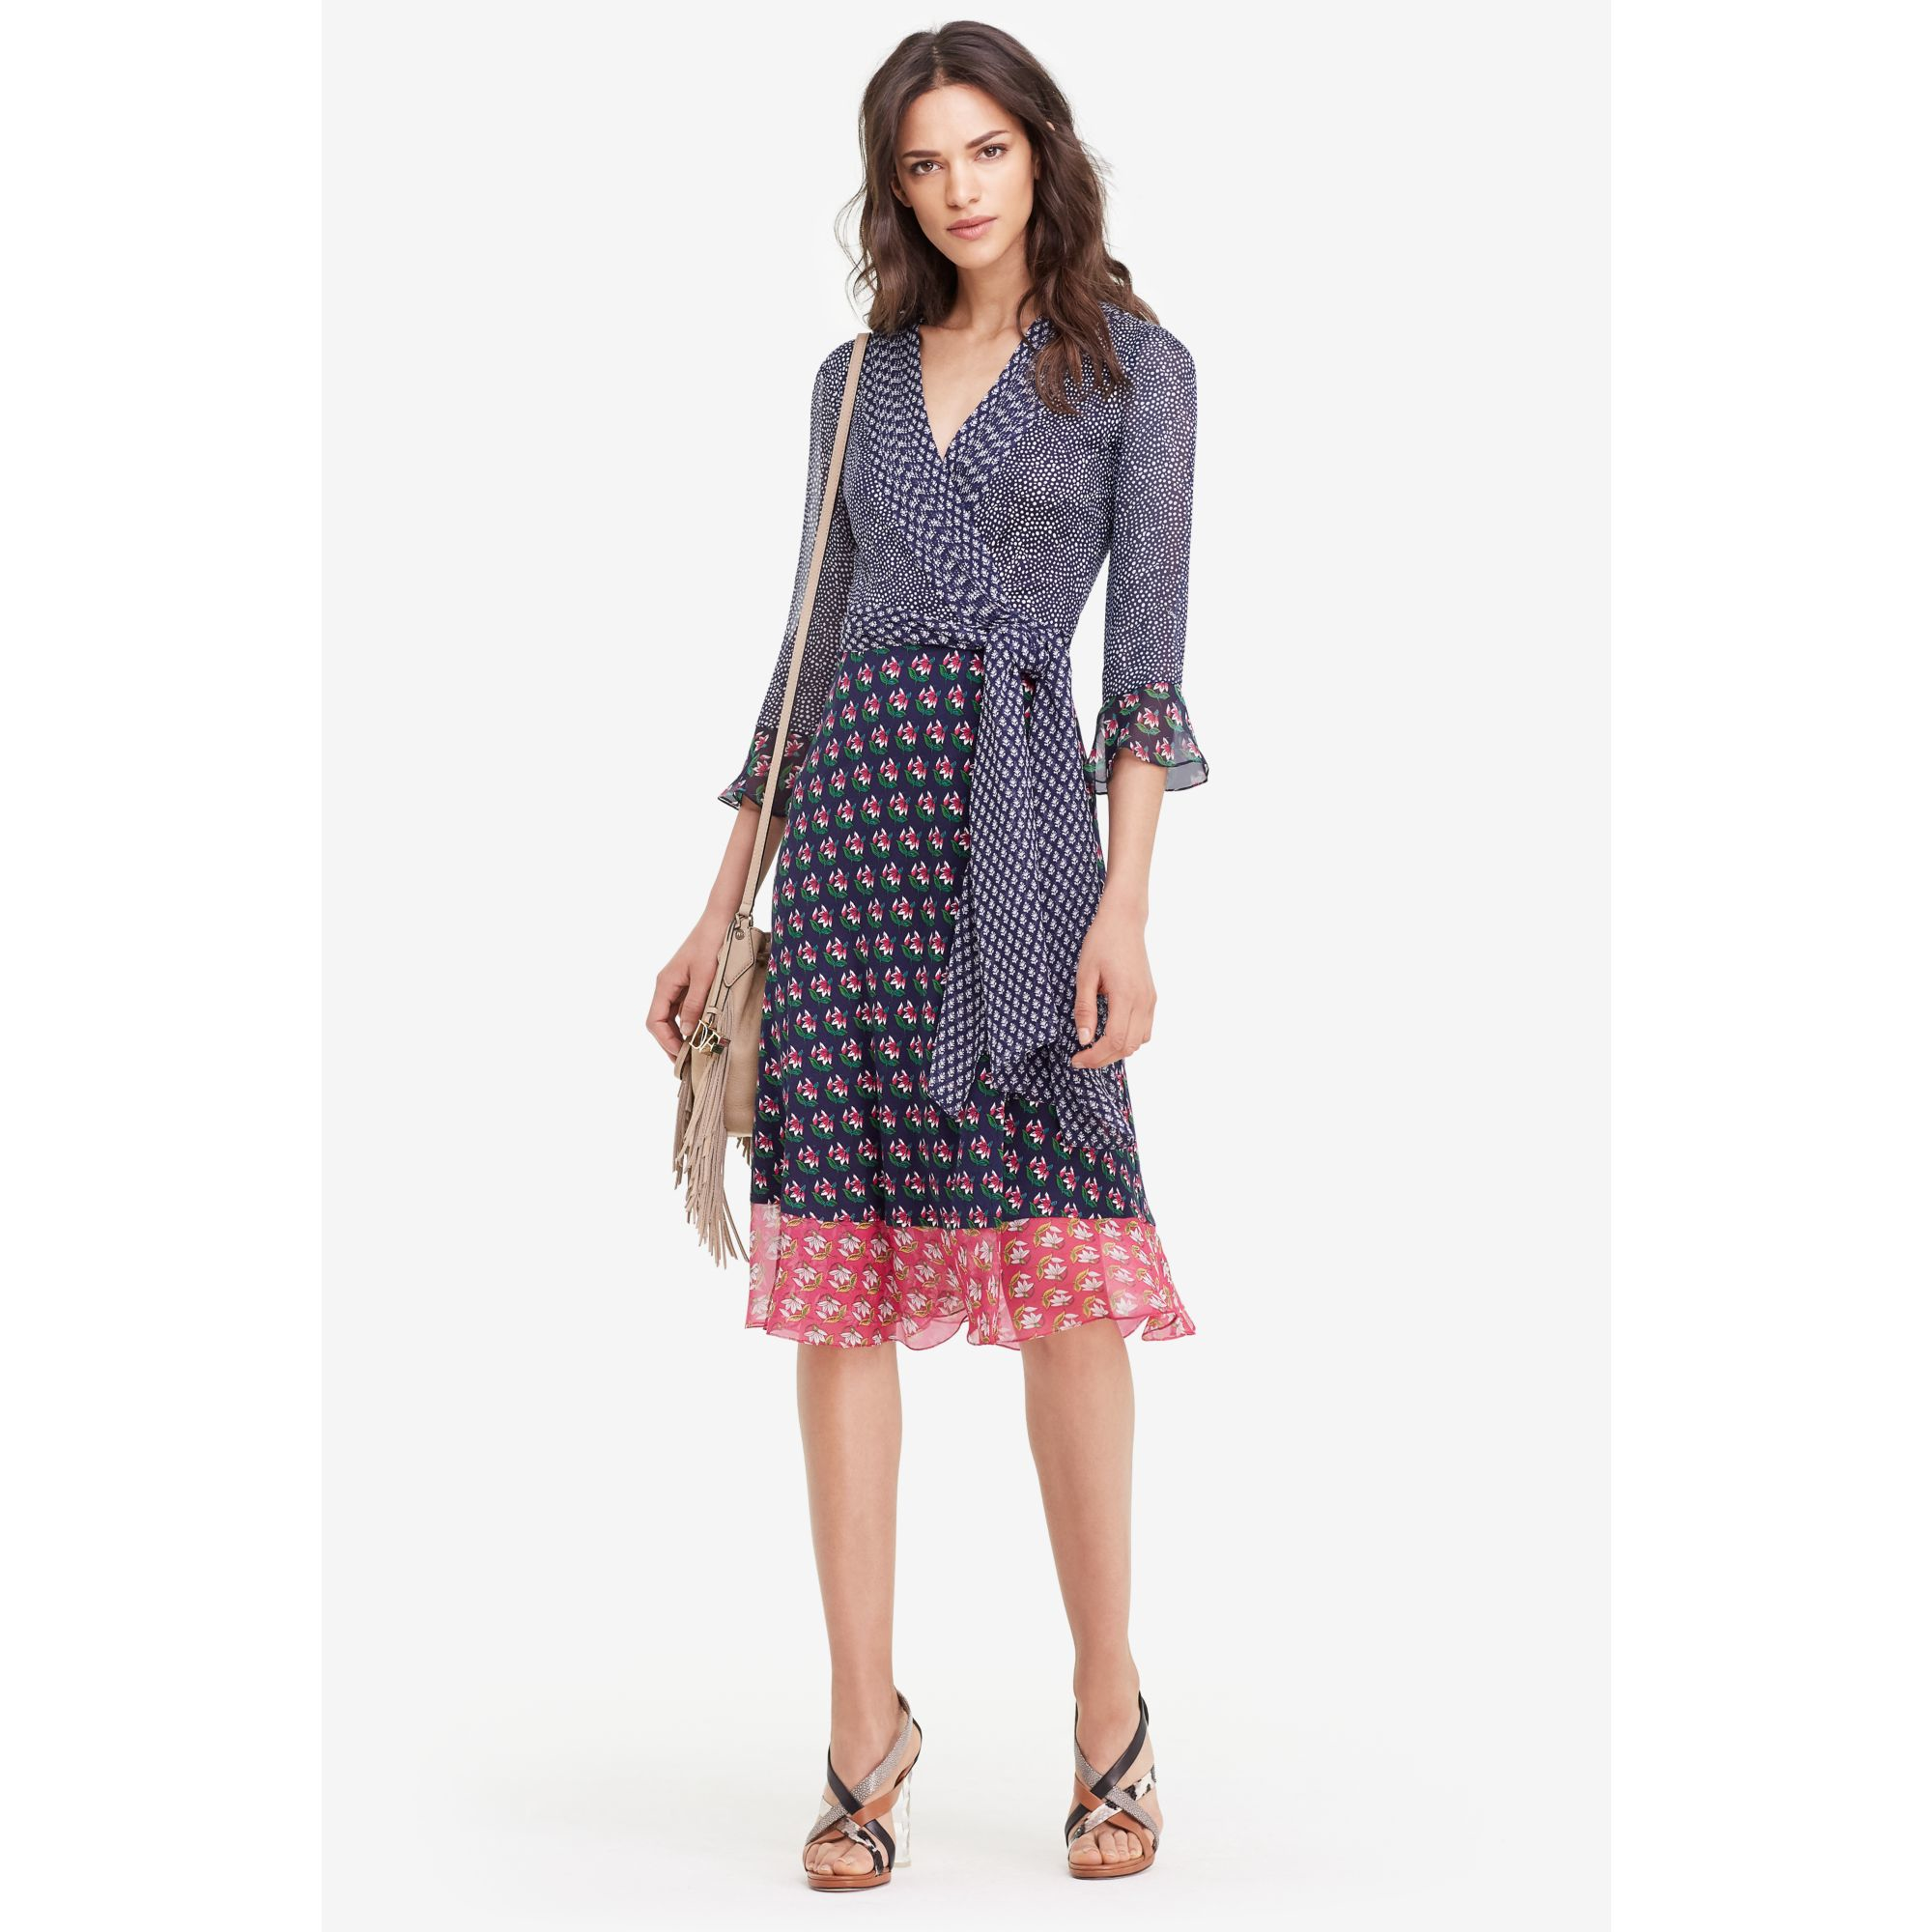 Lyst - Diane Von Furstenberg Nieves Silk and Chiffon Wrap Dress